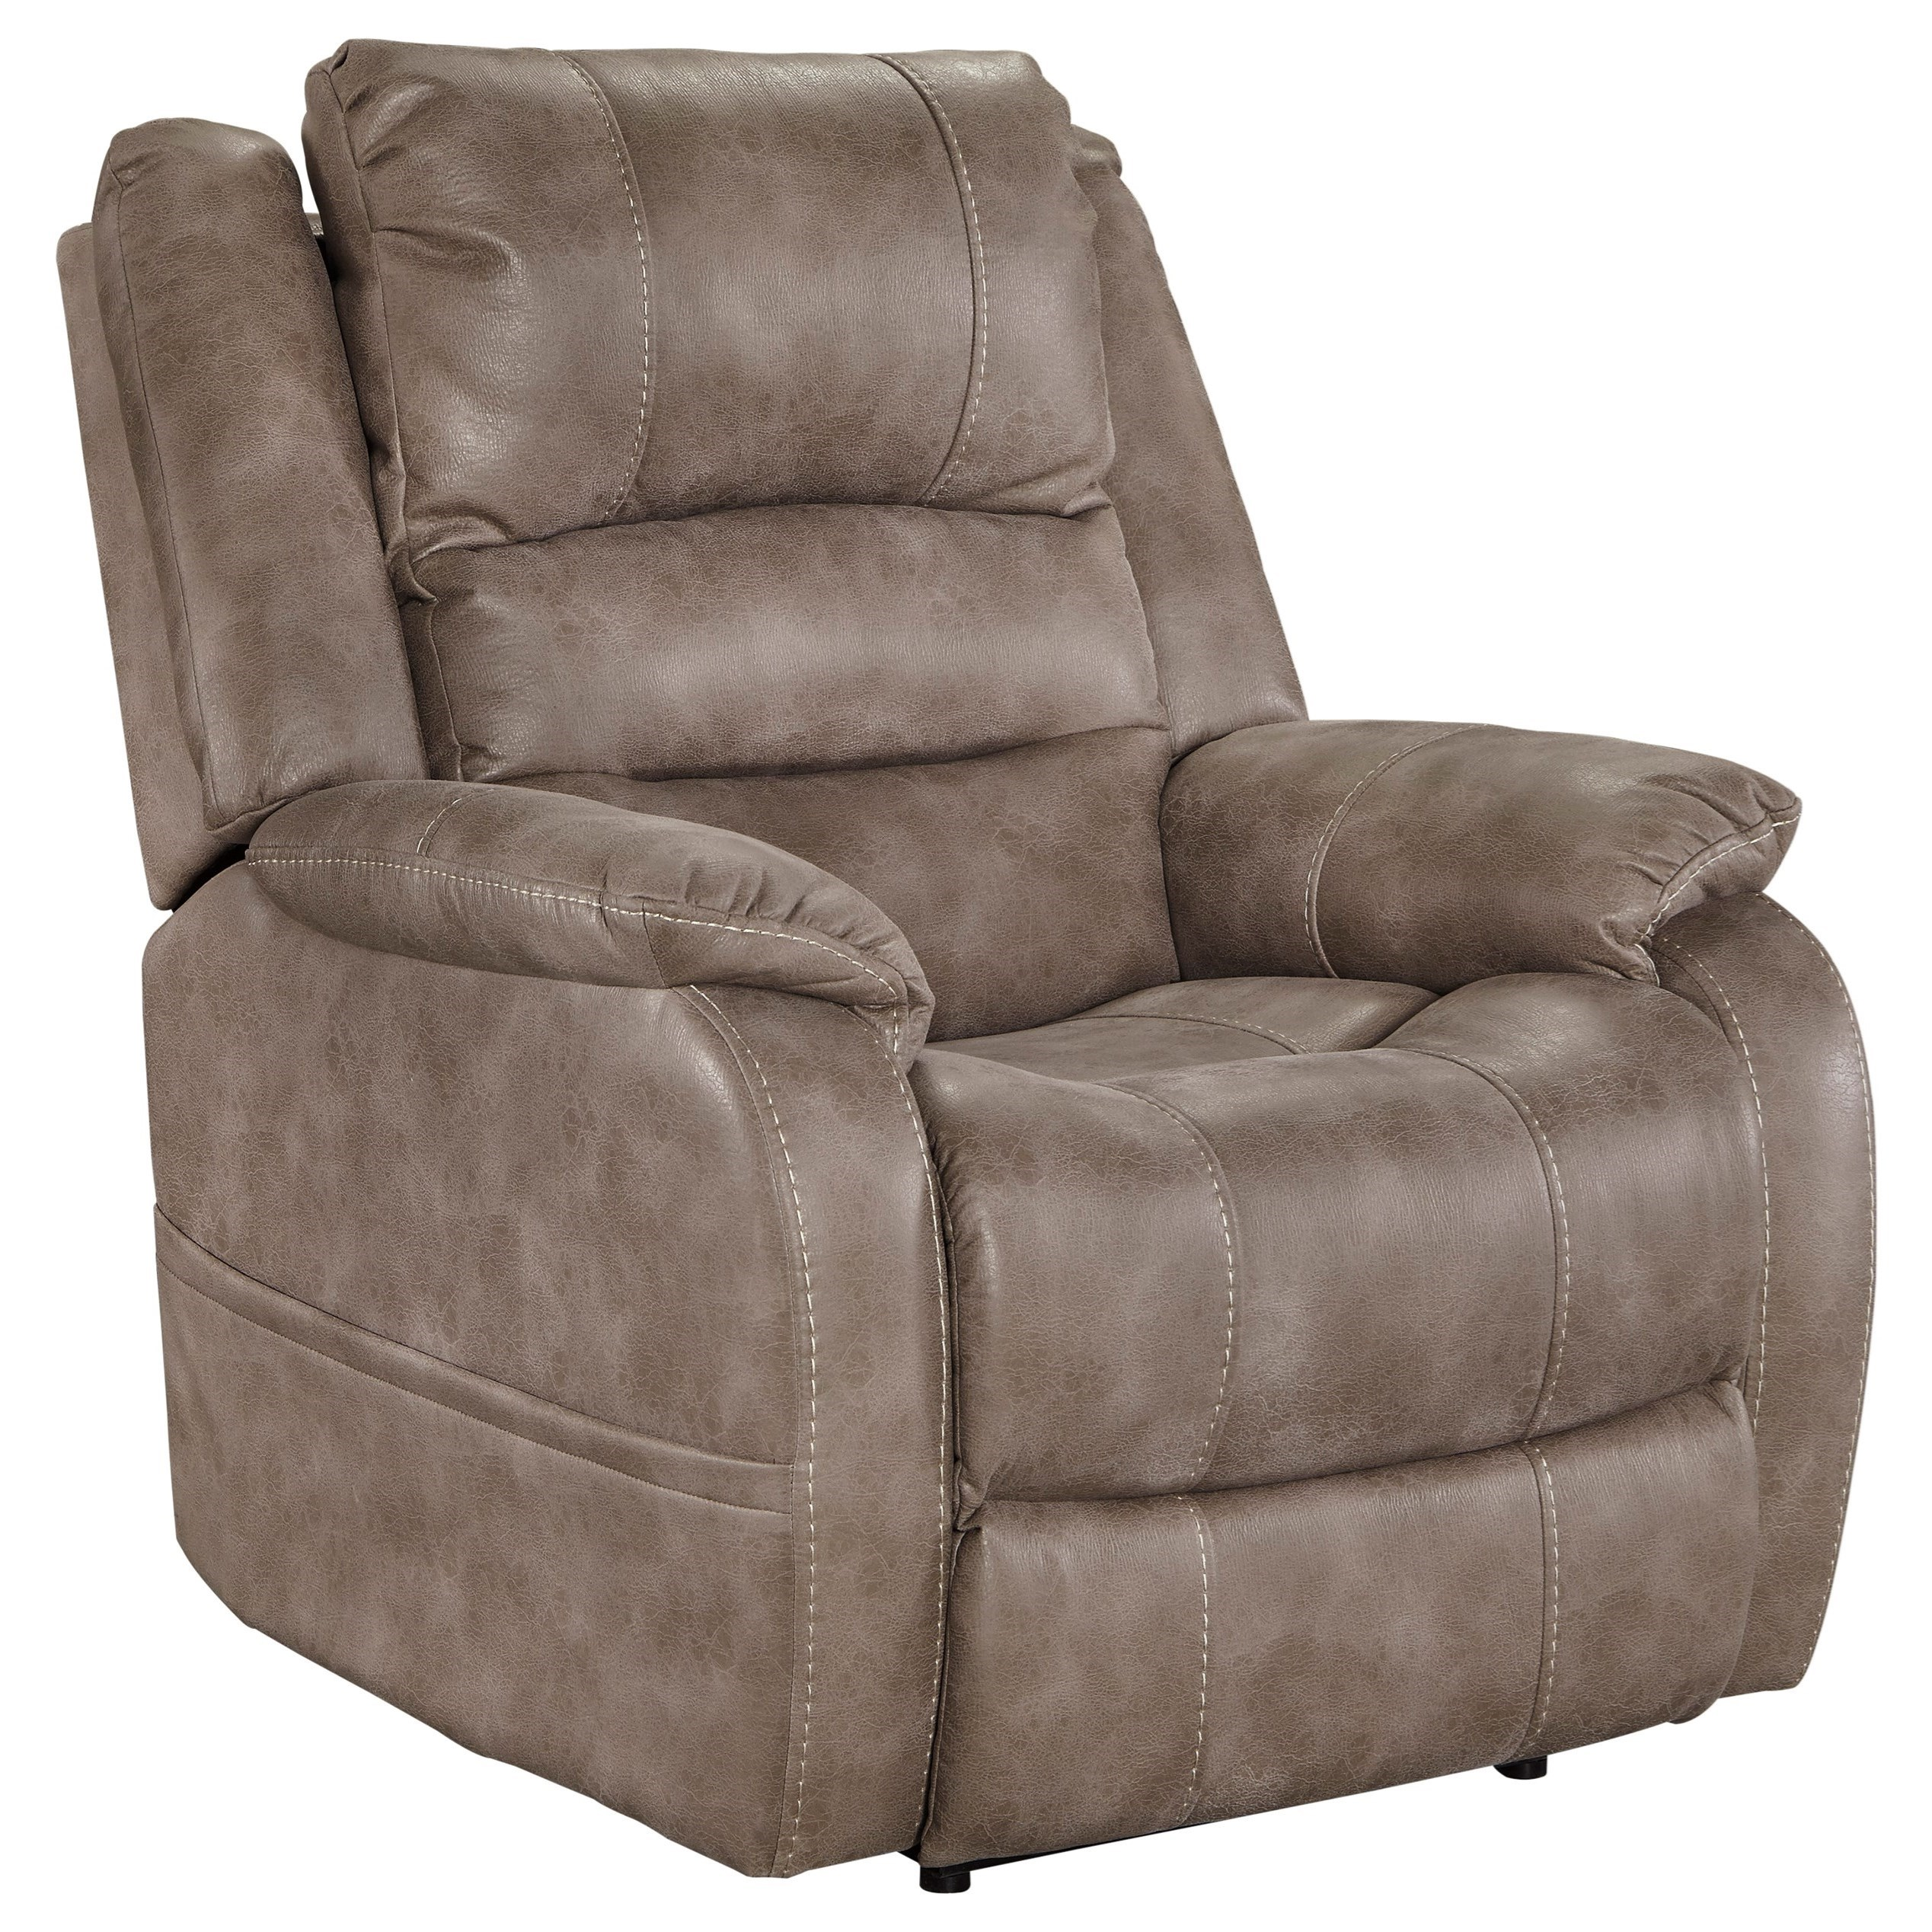 Ashley Recliner Chair Signature Design By Ashley Barling 6880313 Faux Leather